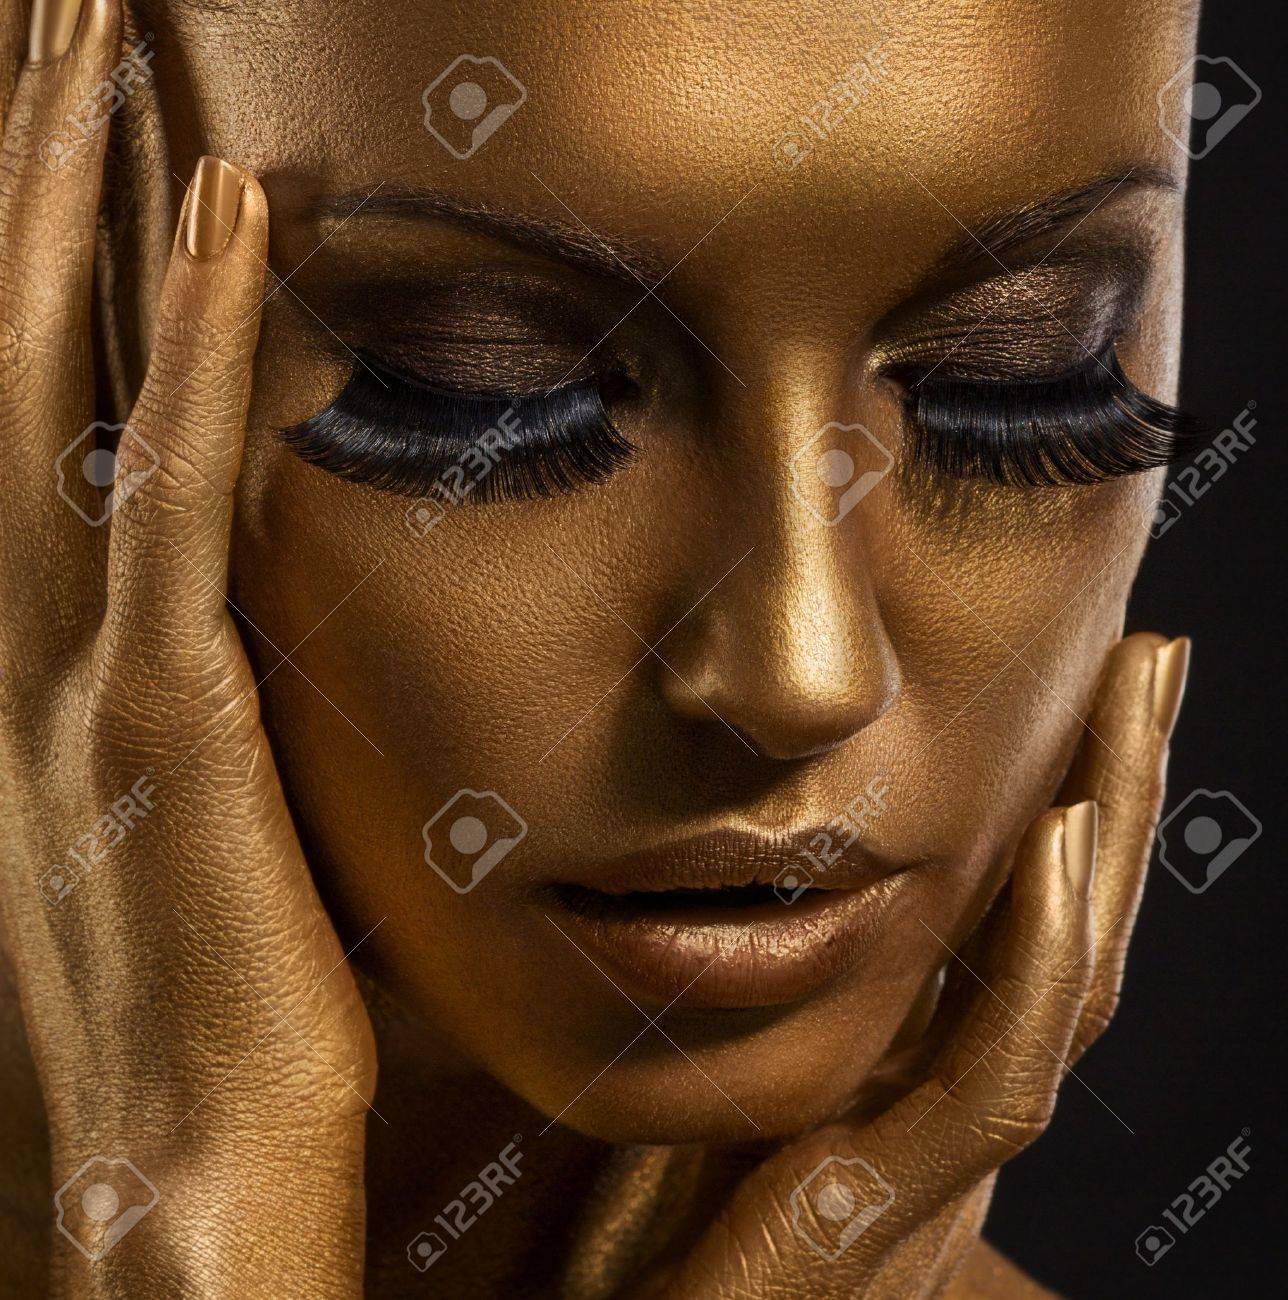 Gilt. Golden Woman's Face Closeup. Futuristic Giled Make-up. Painted Skin Stock Photo - 18462450